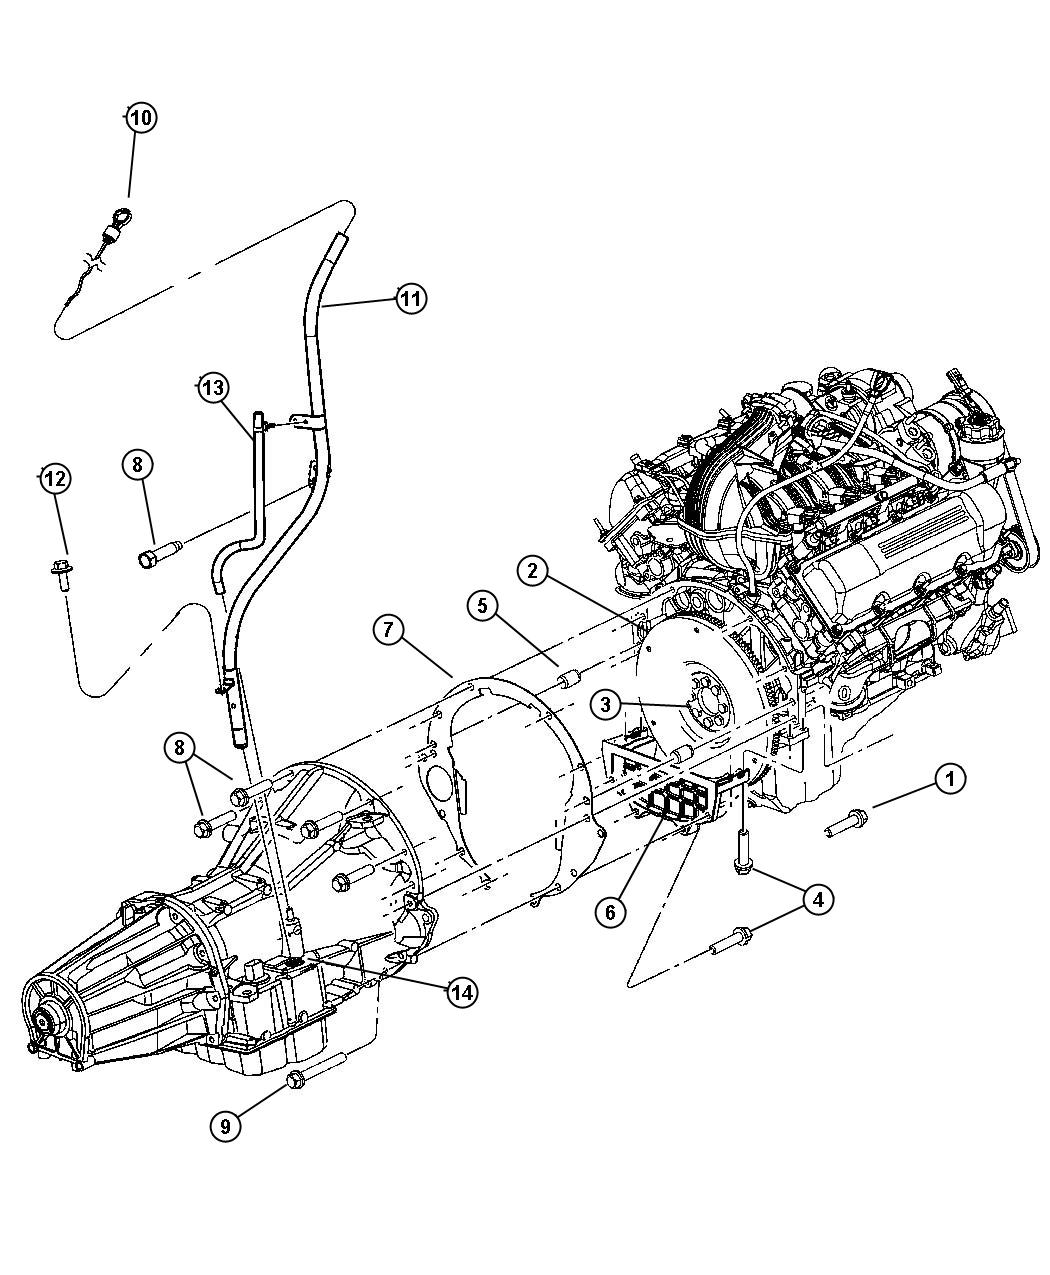 hight resolution of 2001 dodge dakota transmission schematic wiring diagrams konsult 2001 dodge dakota transmission schematic